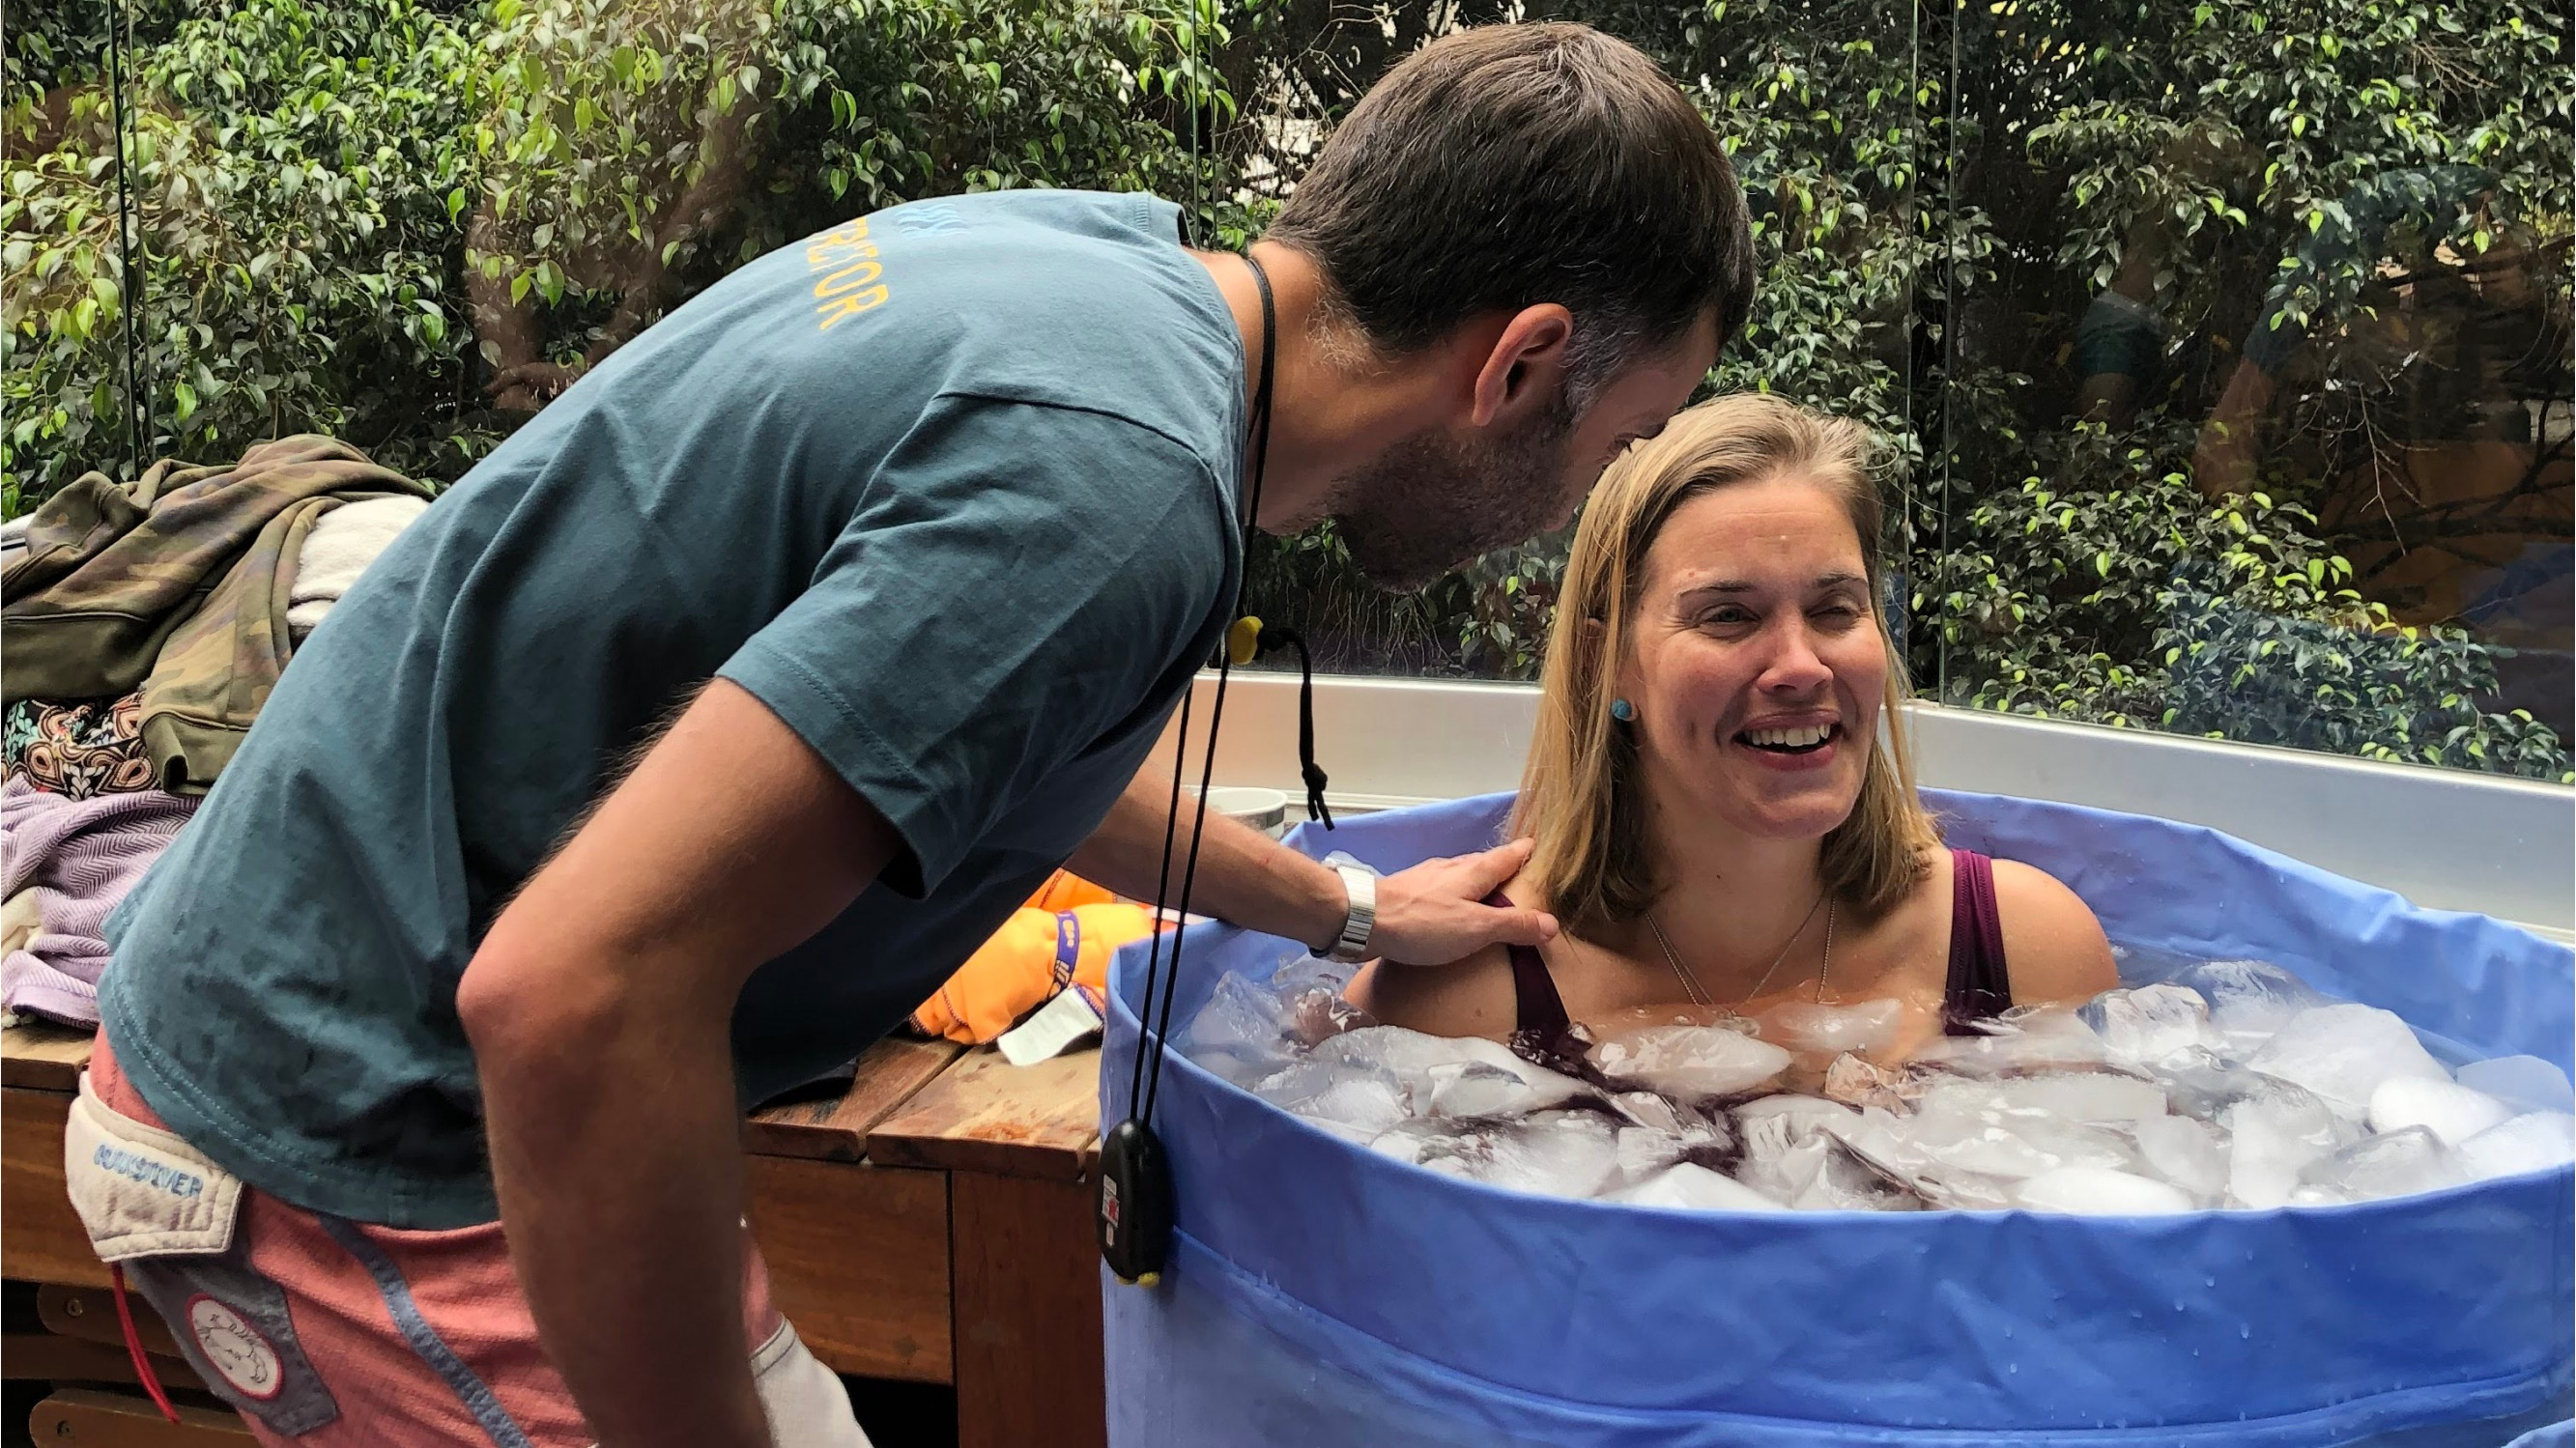 Image 2 of 7 - Experience the Wim Hof Method to get an impression of  at